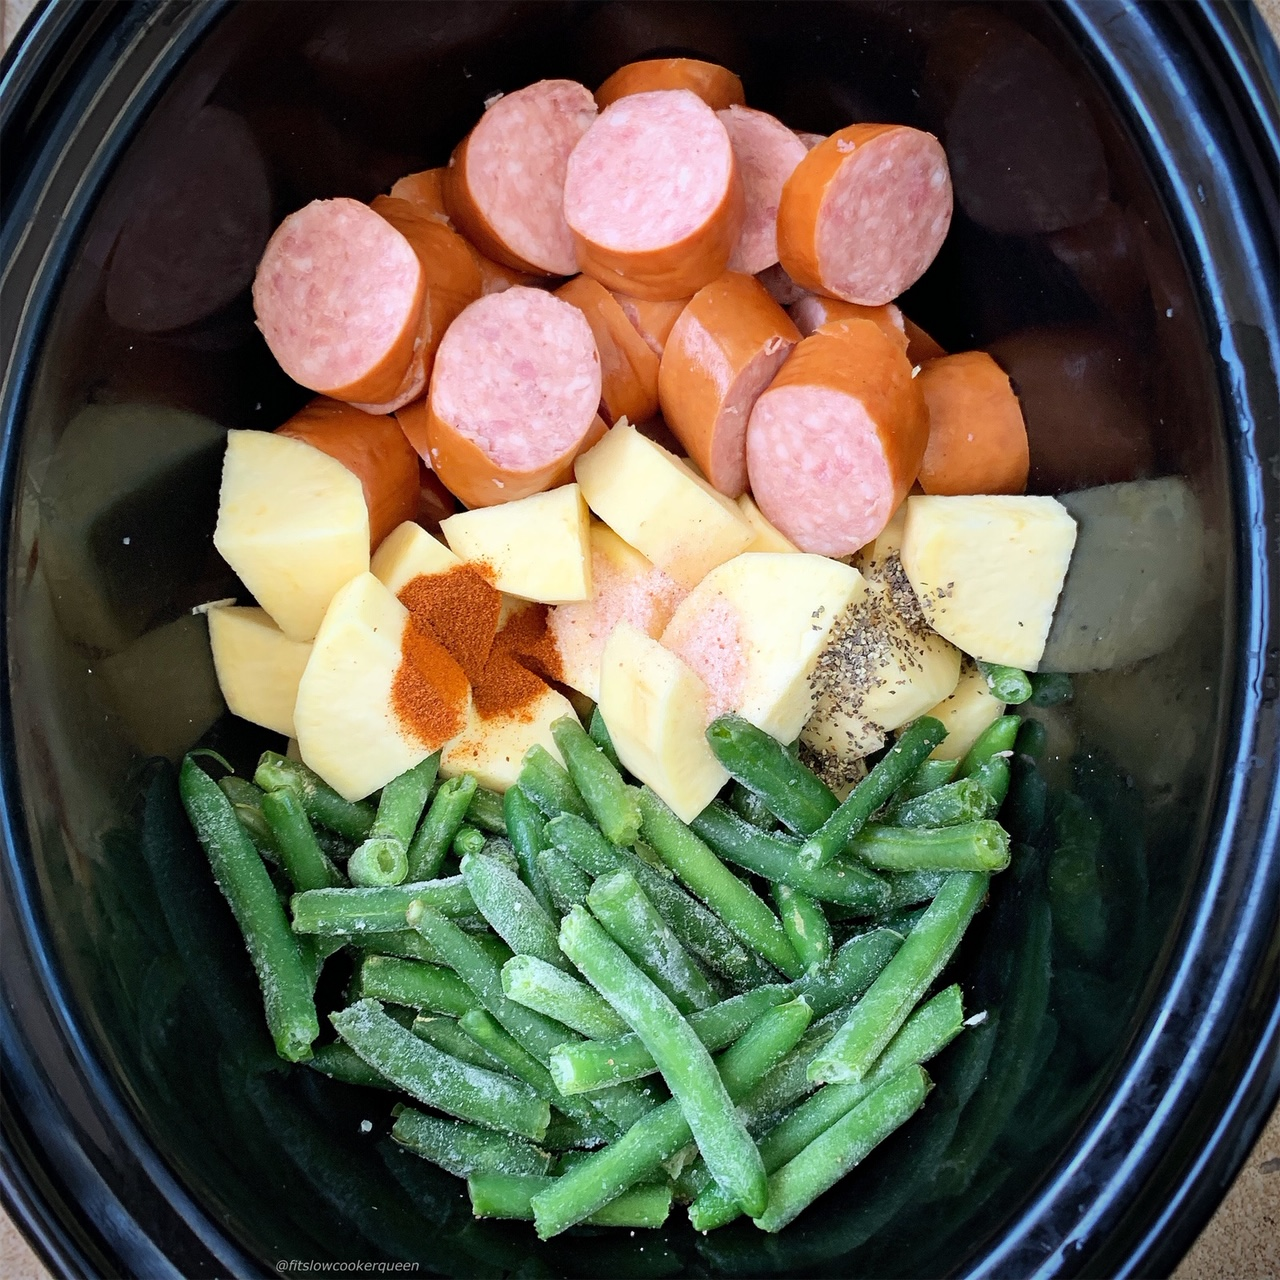 Sausage, potatoes, and green beans cook together in this simple slow cooker or Instant Pot staple recipe. Both paleo, and whole30, this healthy recipe can be served any time of the week.